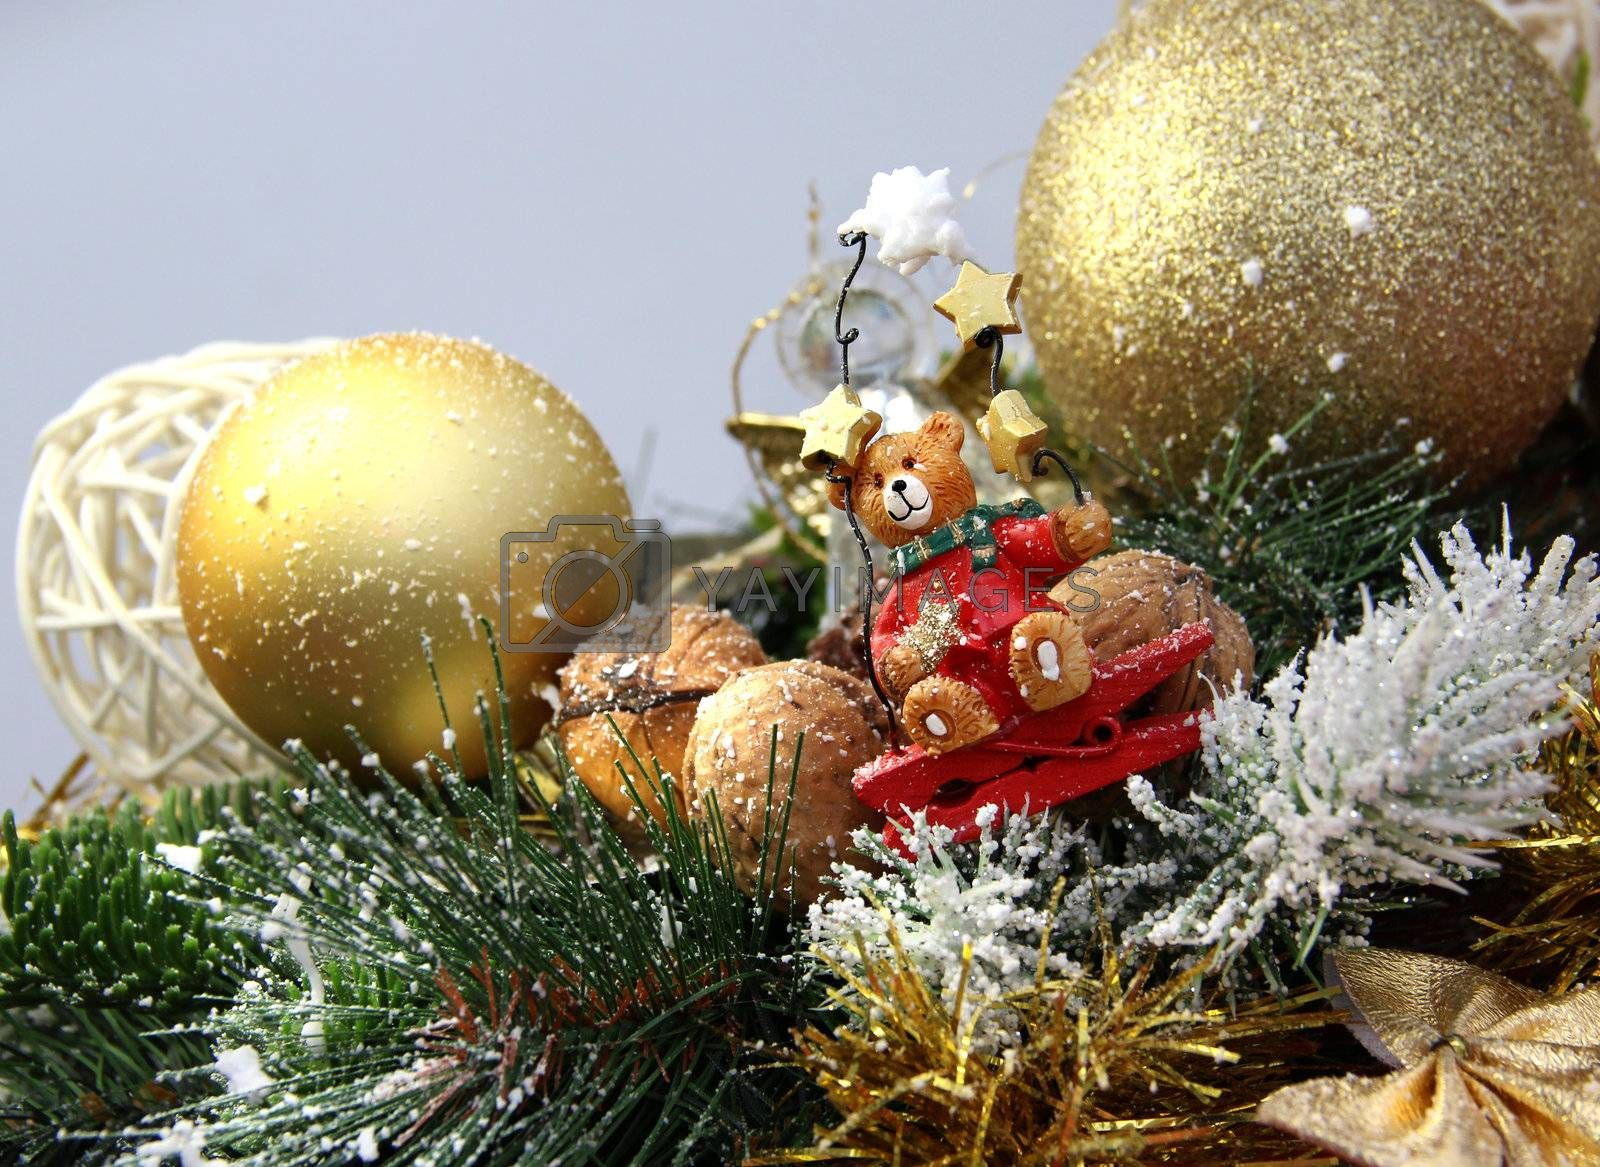 Big mix of Christmas decorations with cute bear